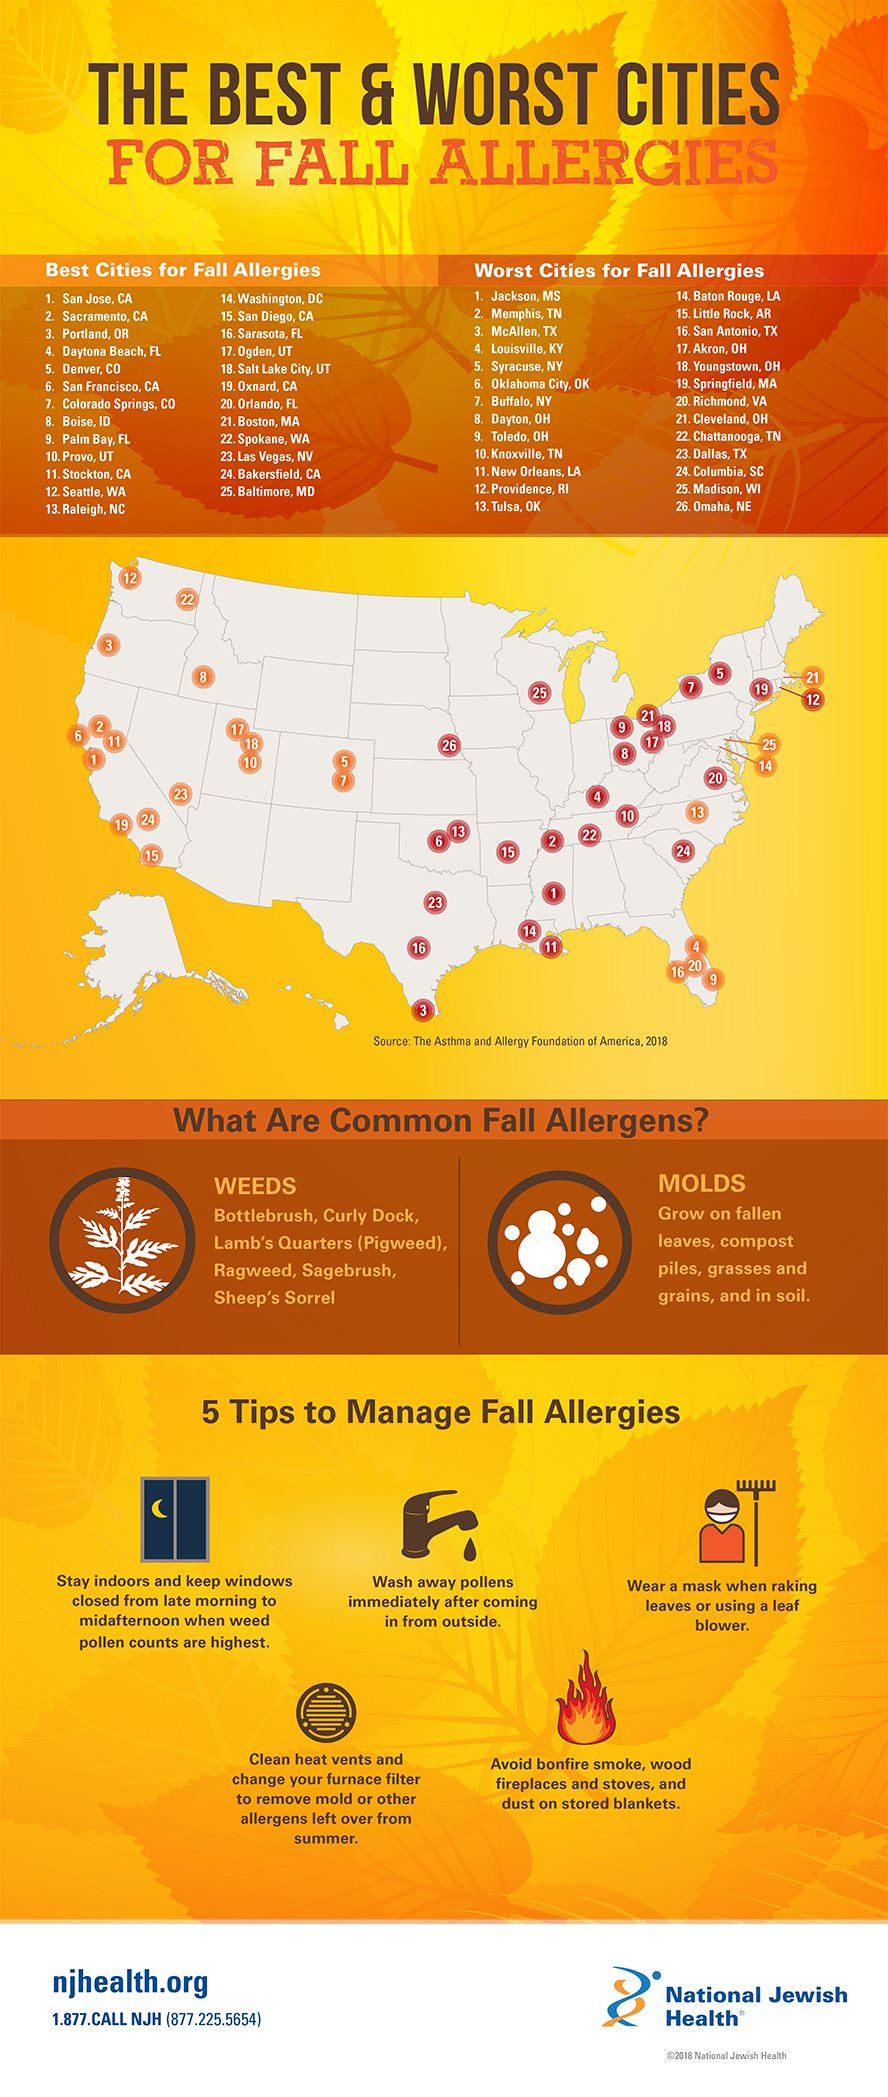 The Best & Worst Cities for Fall Allergies